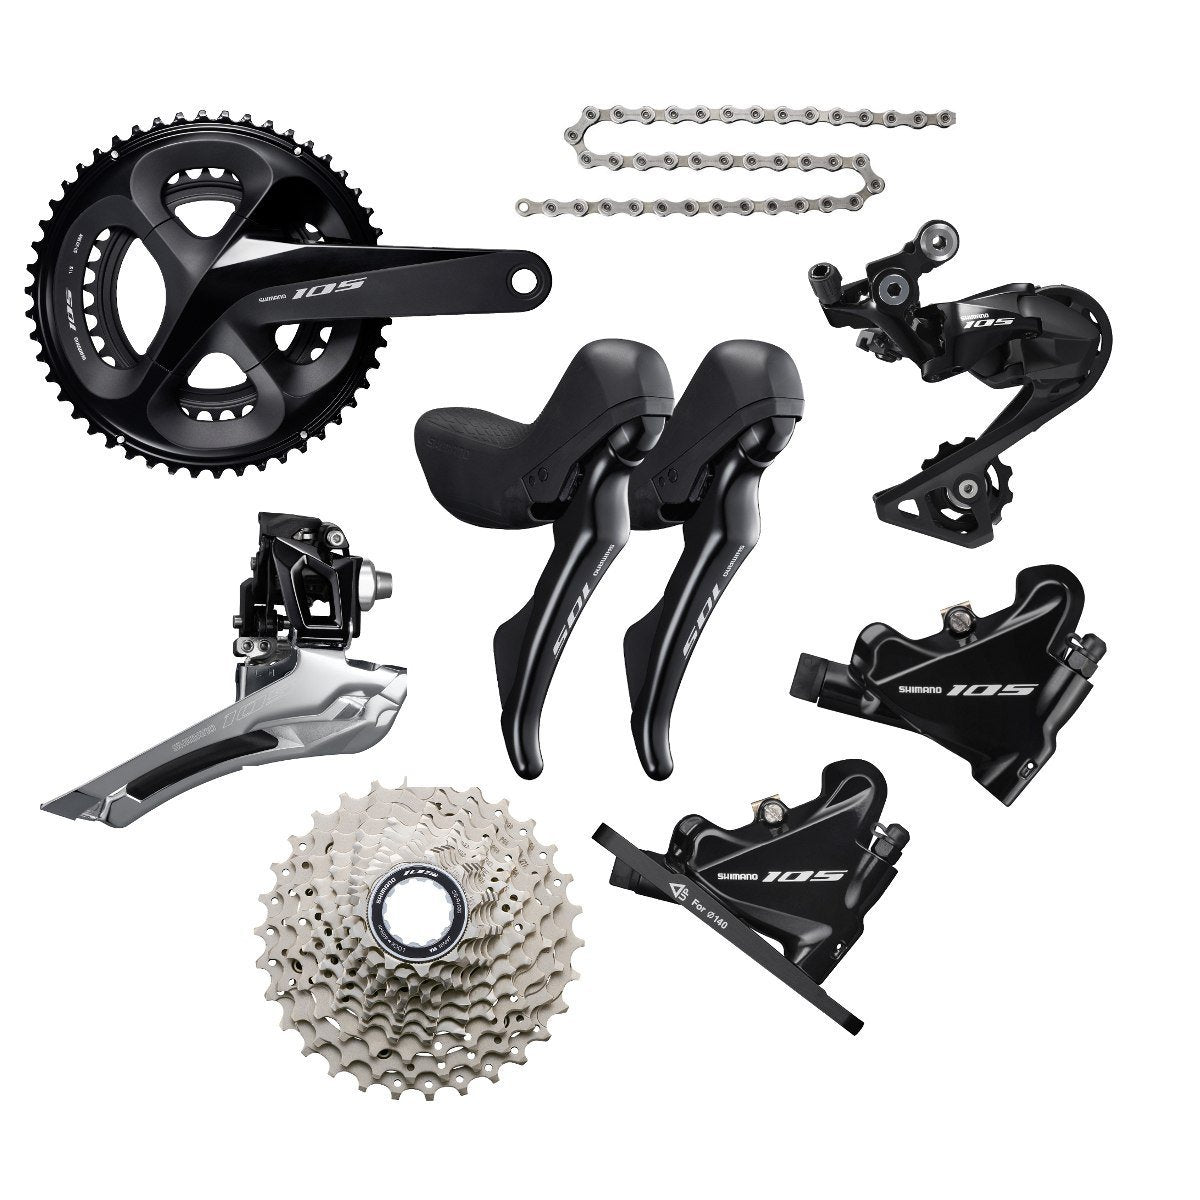 Shimano Components > Groupsets Shimano 105 R7020 Disc Groupset Black